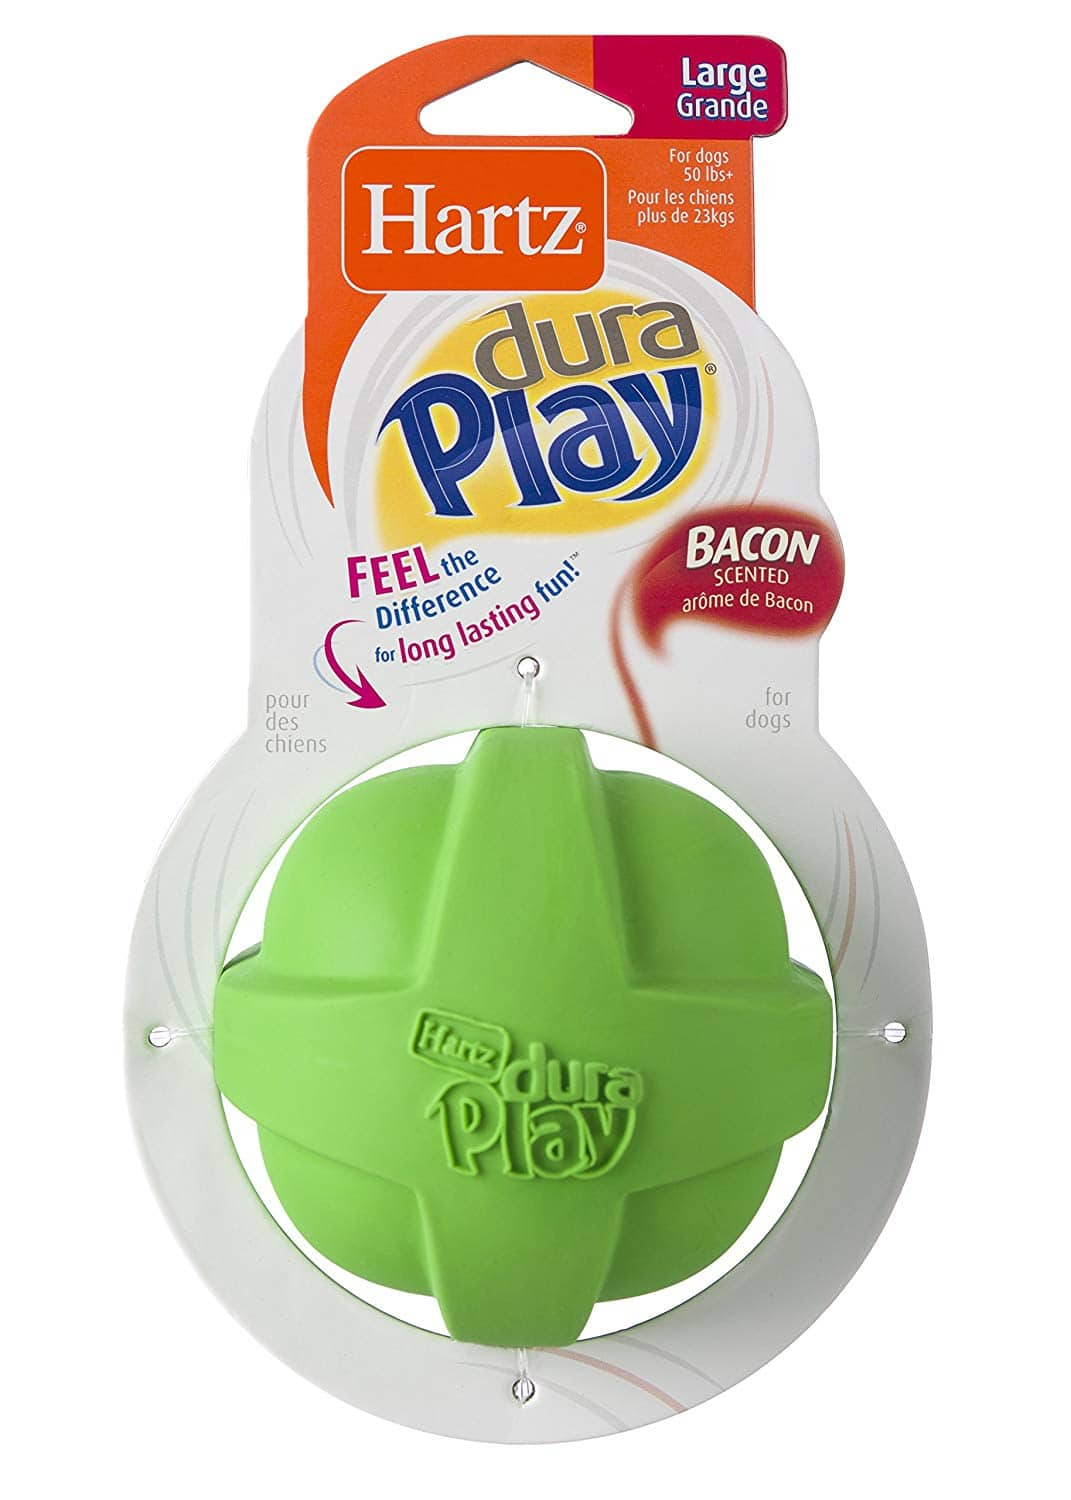 Hartz Dura Play Bacon Scented Dog Toy (Large Ball) $1.75 w/ S&S + Free Shipping